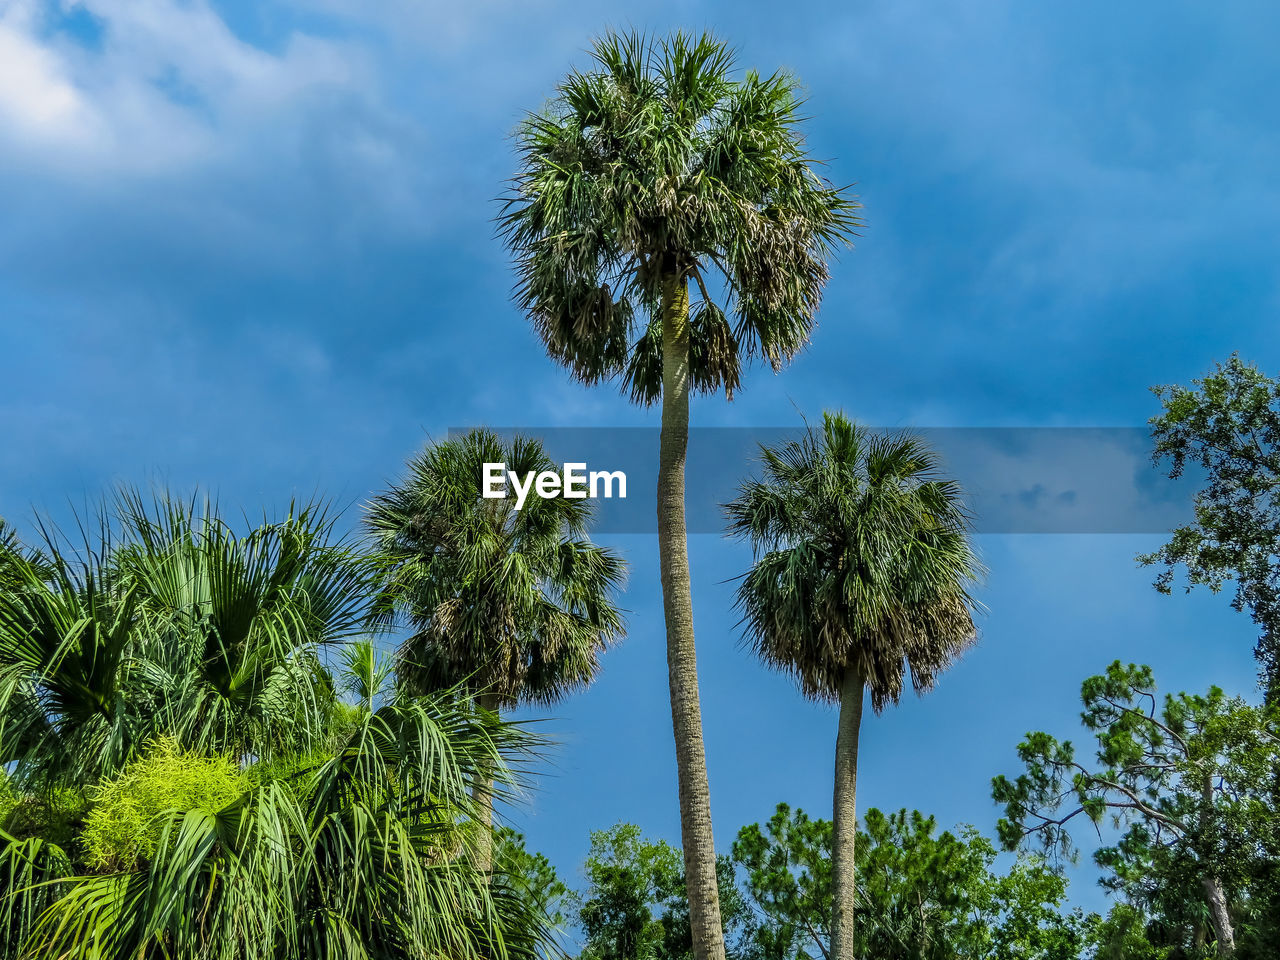 plant, sky, tree, growth, cloud - sky, low angle view, beauty in nature, tropical climate, palm tree, nature, green color, no people, day, tranquility, outdoors, scenics - nature, trunk, tree trunk, tall - high, tranquil scene, coconut palm tree, tropical tree, palm leaf